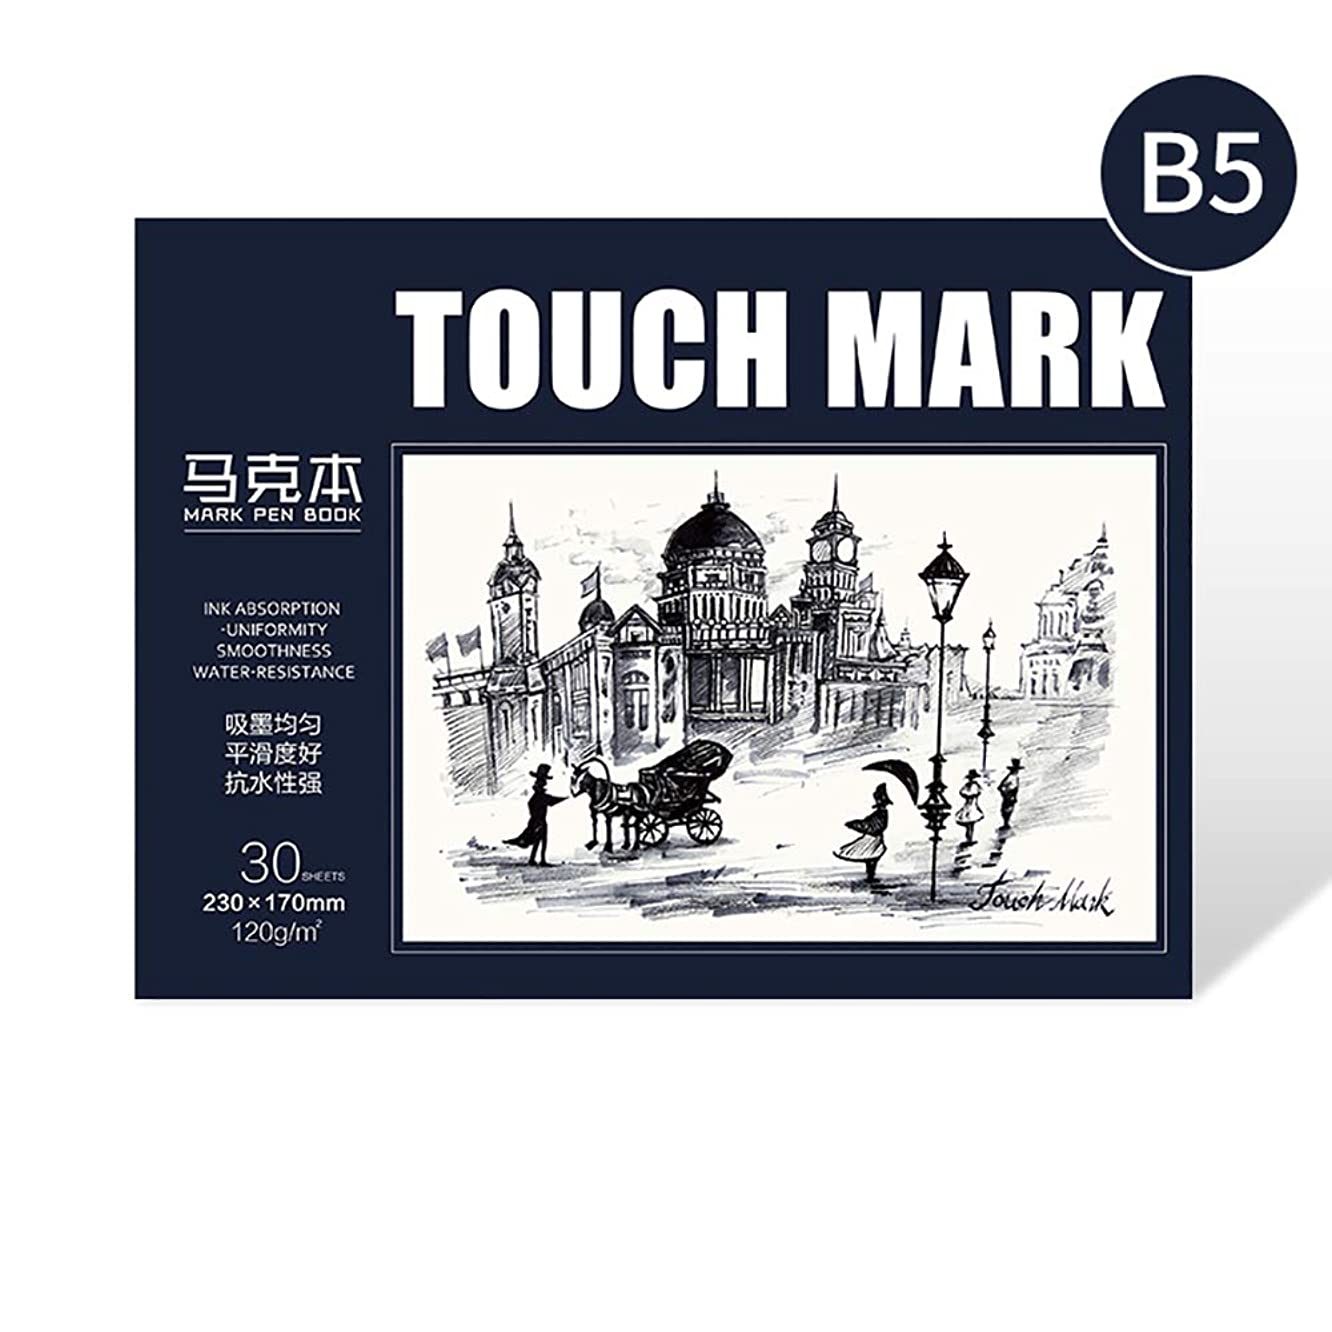 BUCOTA Touchmark Series Watercolor Paper Marker Pen Book Drawing Paper Sketchbook, 30 Sheets 0.4 lb, Mixed Media Uses 1pc